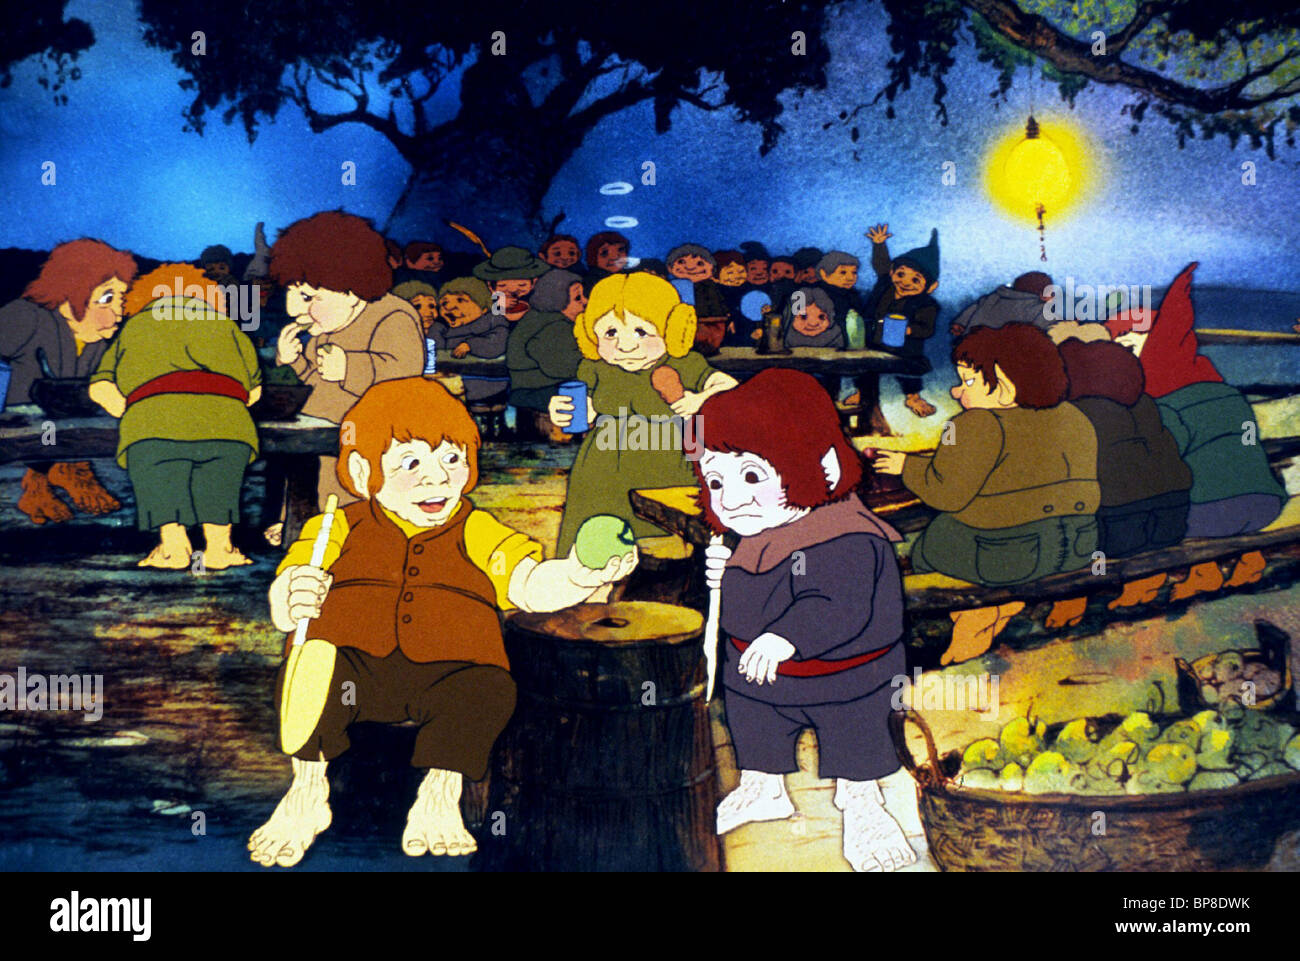 HOBBIT SCENE THE LORD OF THE RINGS (1978) - Stock Image